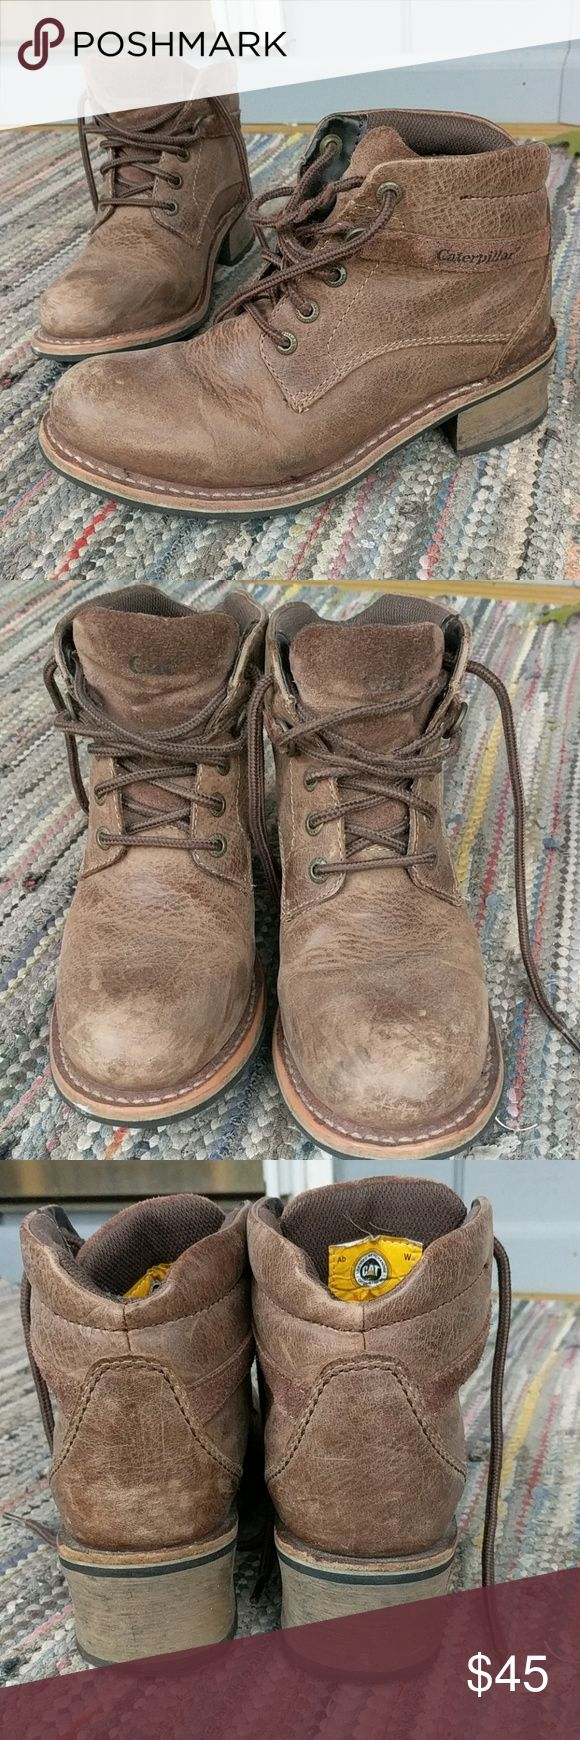 Caterpillar boots Brown leather boots.  Sturdy enough for work boots, but also very cool with jeans. Deep treads, so excellent winter boots. Warn and loved, but still in great condition. Normal wear evident. Caterpillar Shoes Combat & Moto Boots